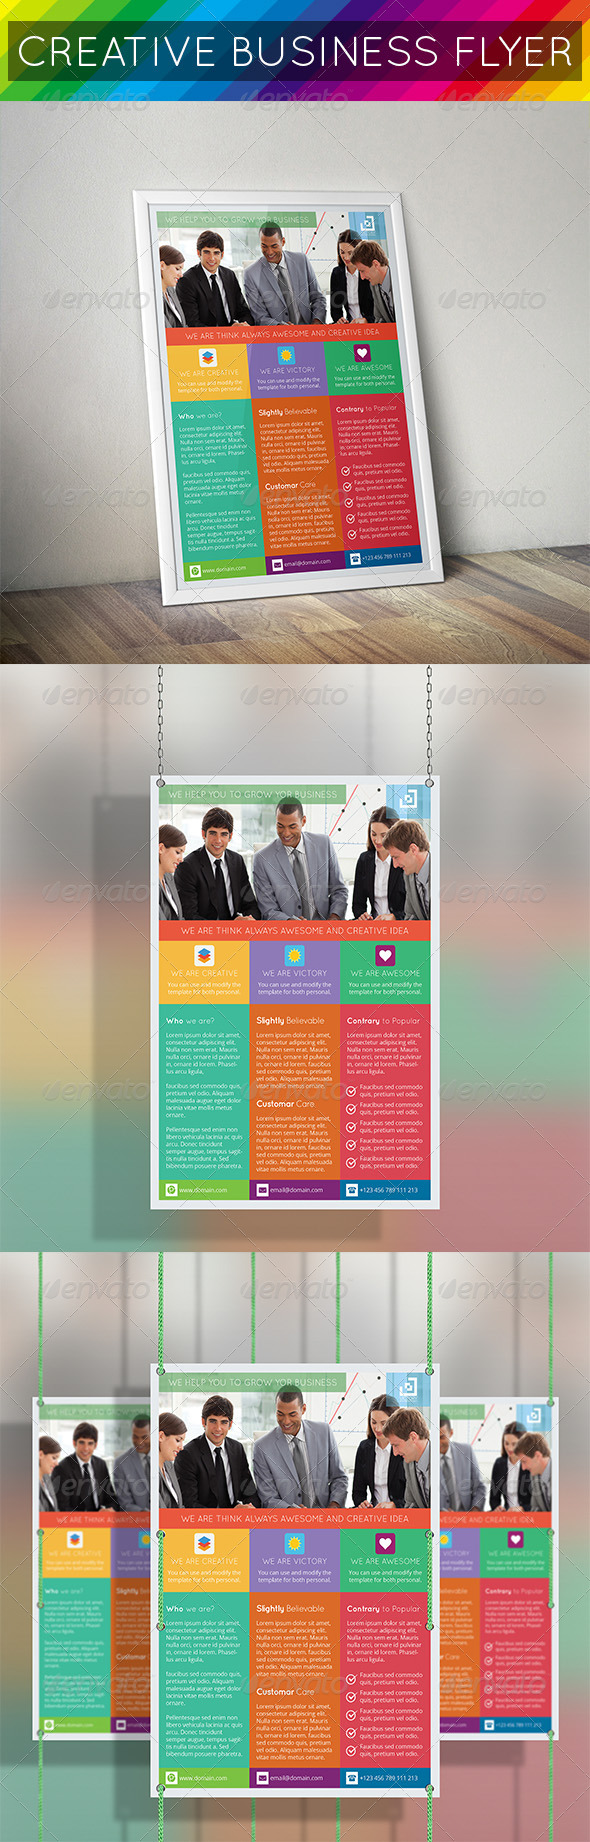 Fresh & Creative Business Flyer - Corporate Flyers